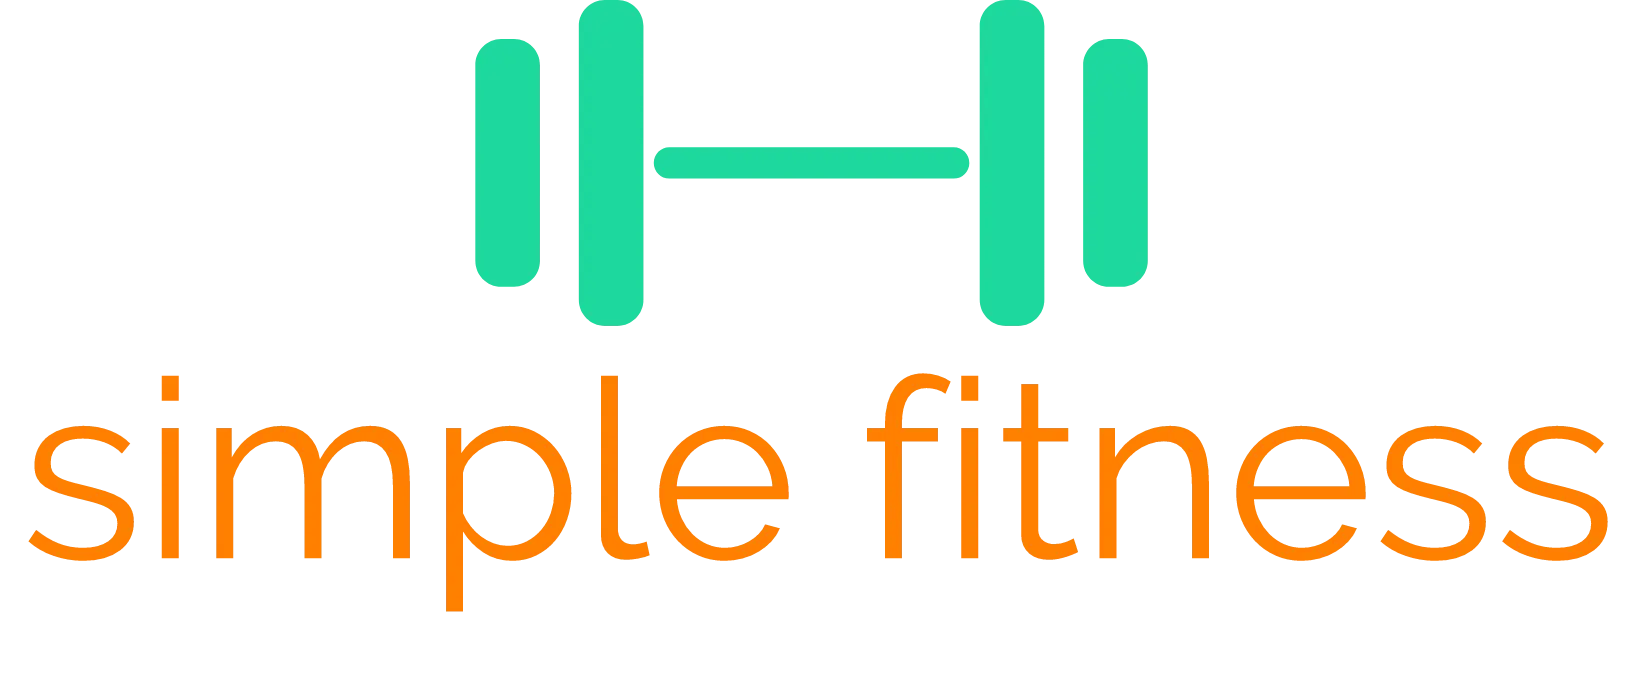 Simple Fitness by Kim